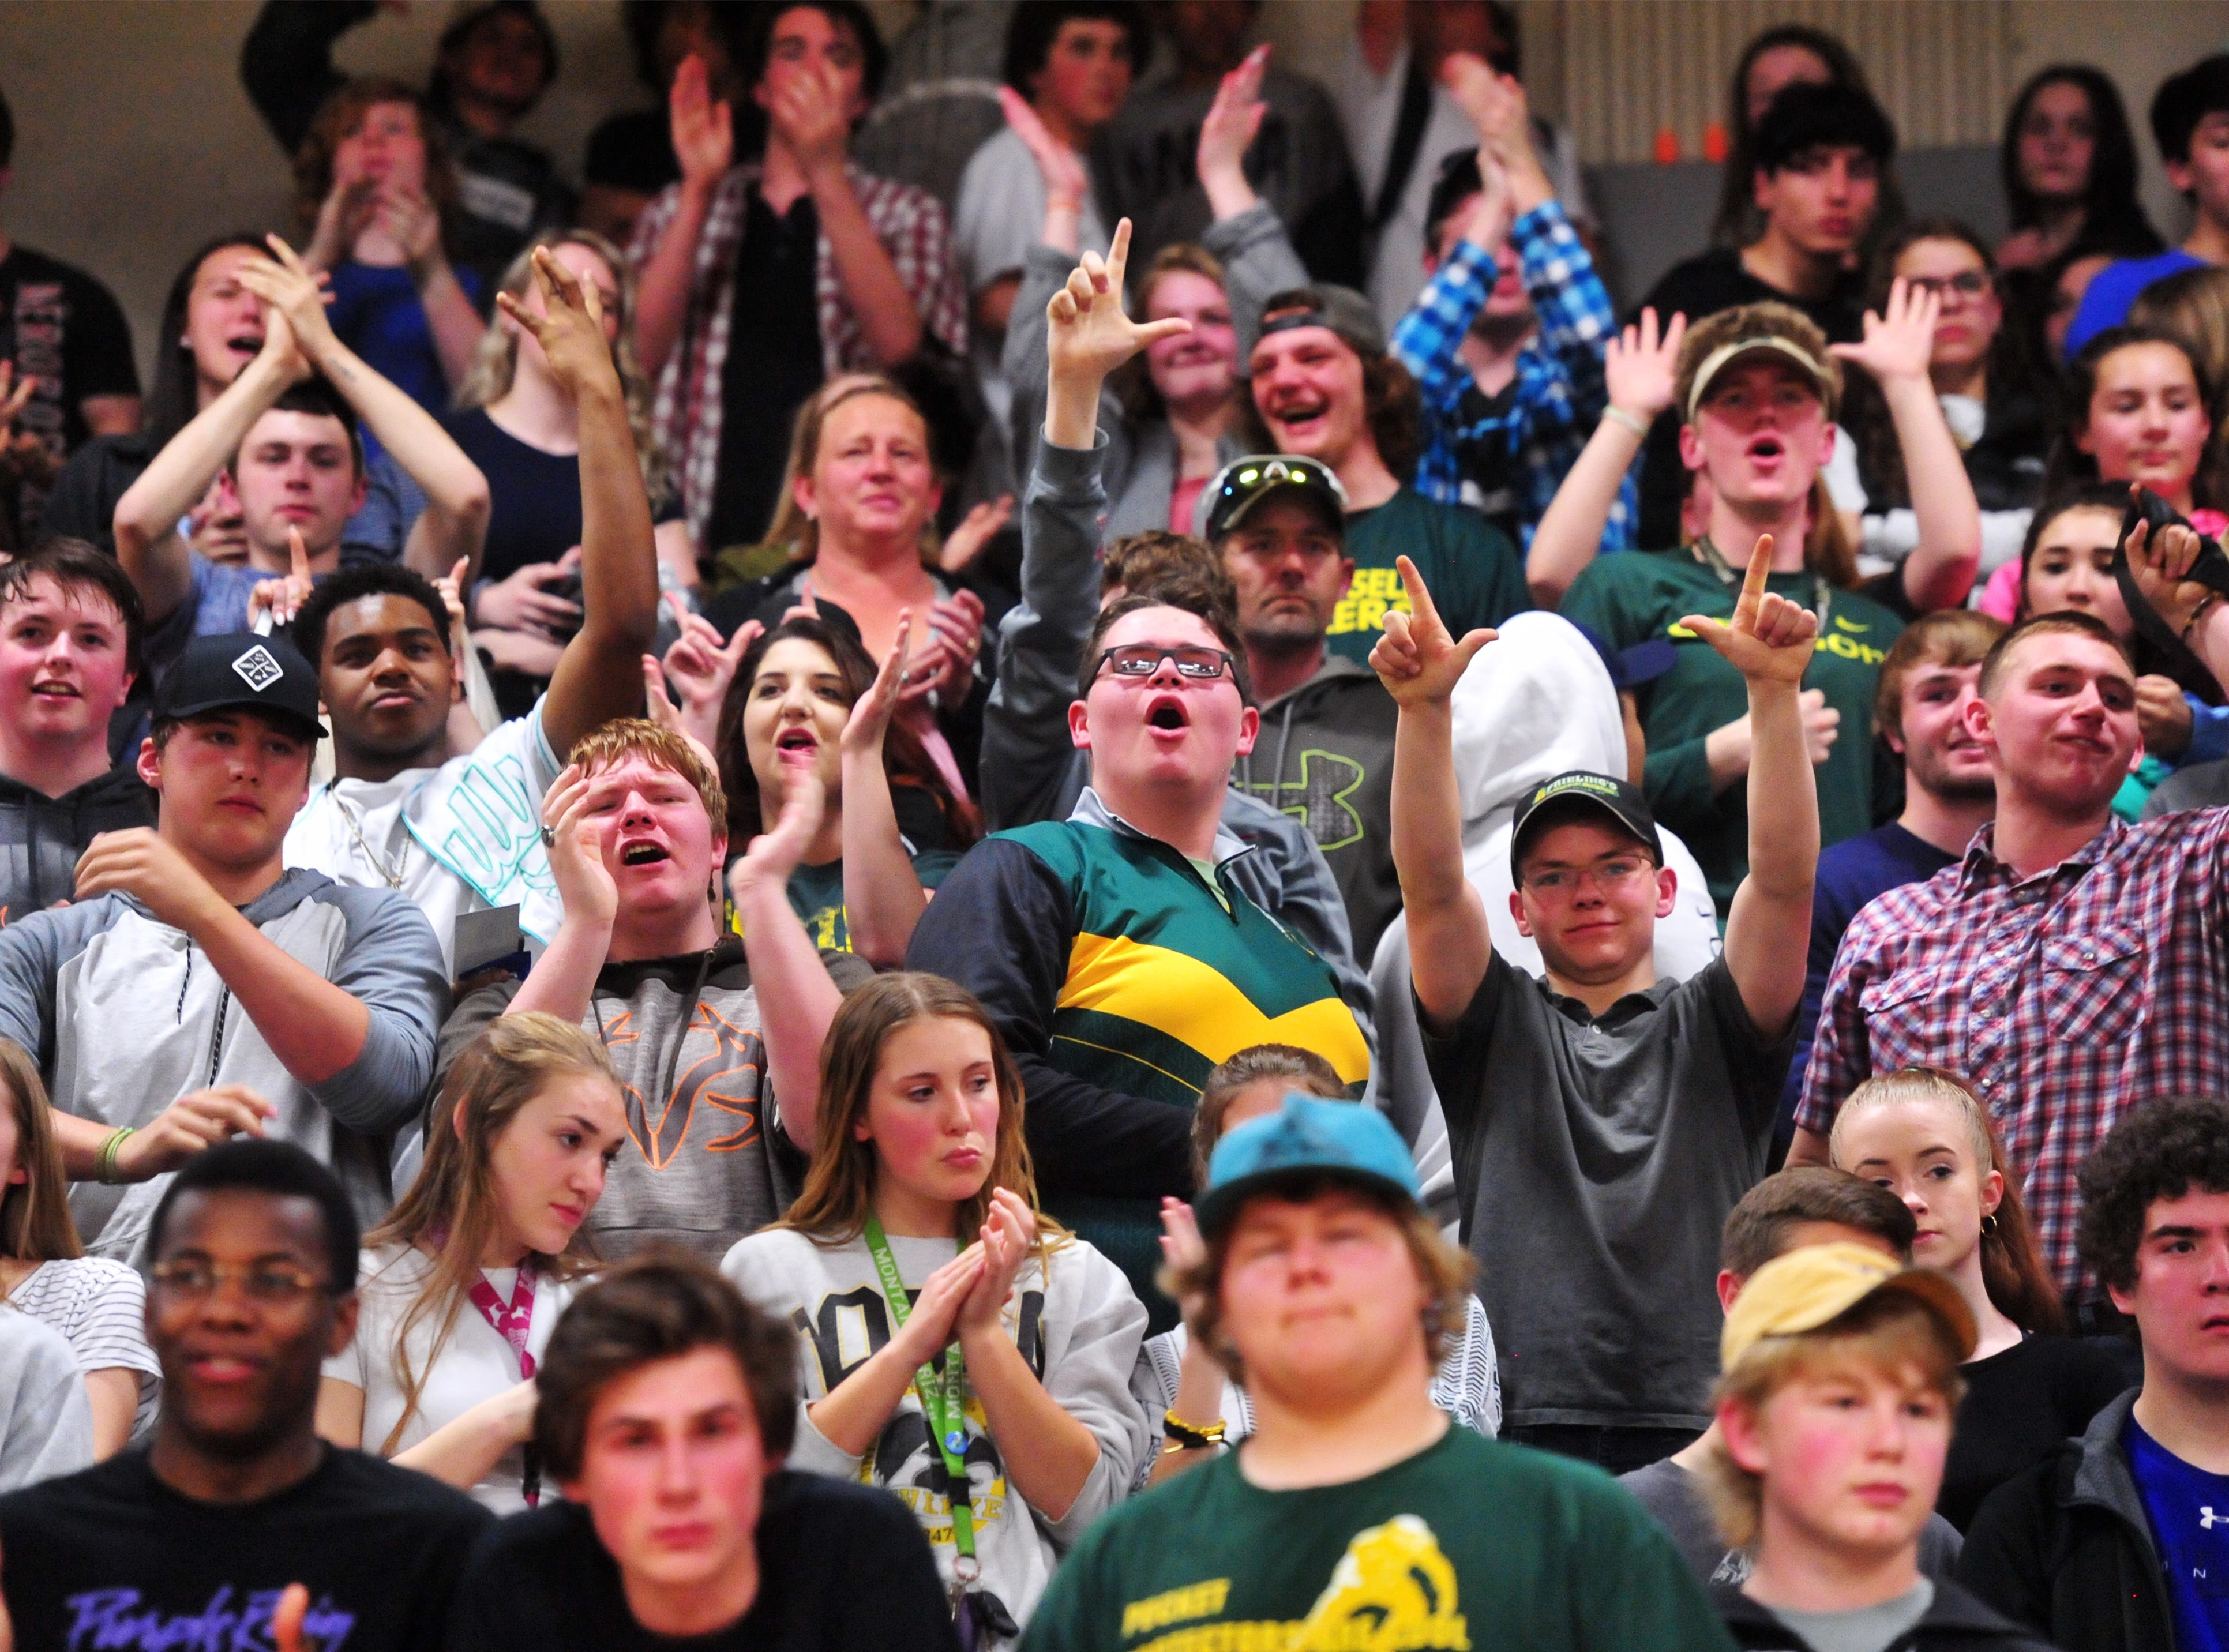 CMR student section at the 2019 Crosstown Rumble, Friday night at Paris Gibson Education Center.